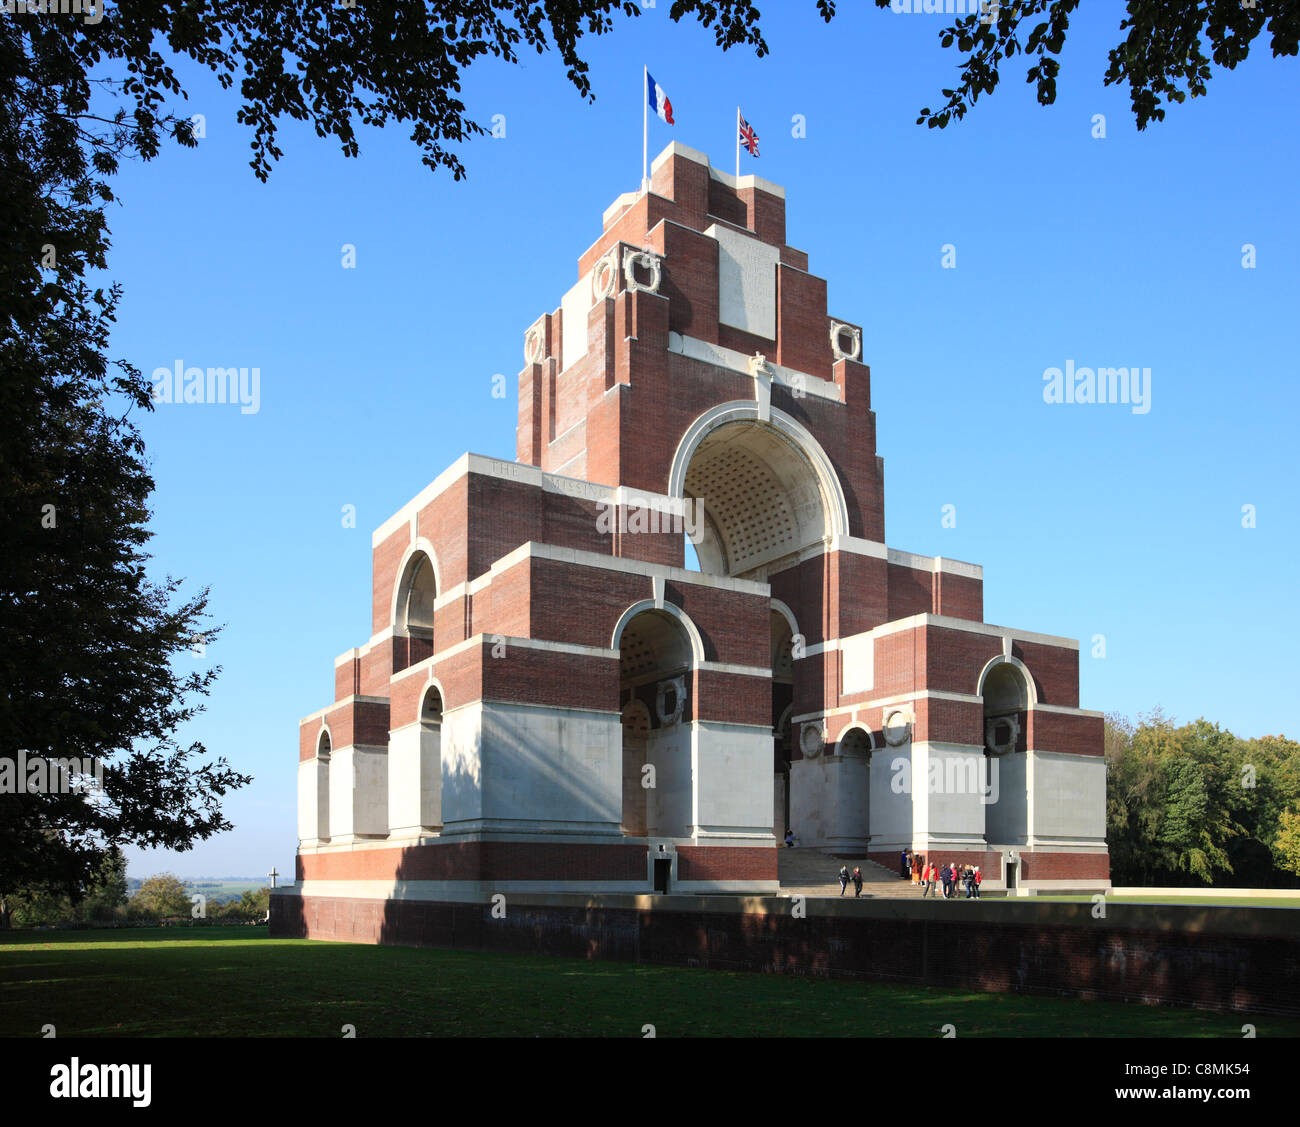 Thiepval Memorial to The Missing on The Somme, France. - Stock Image